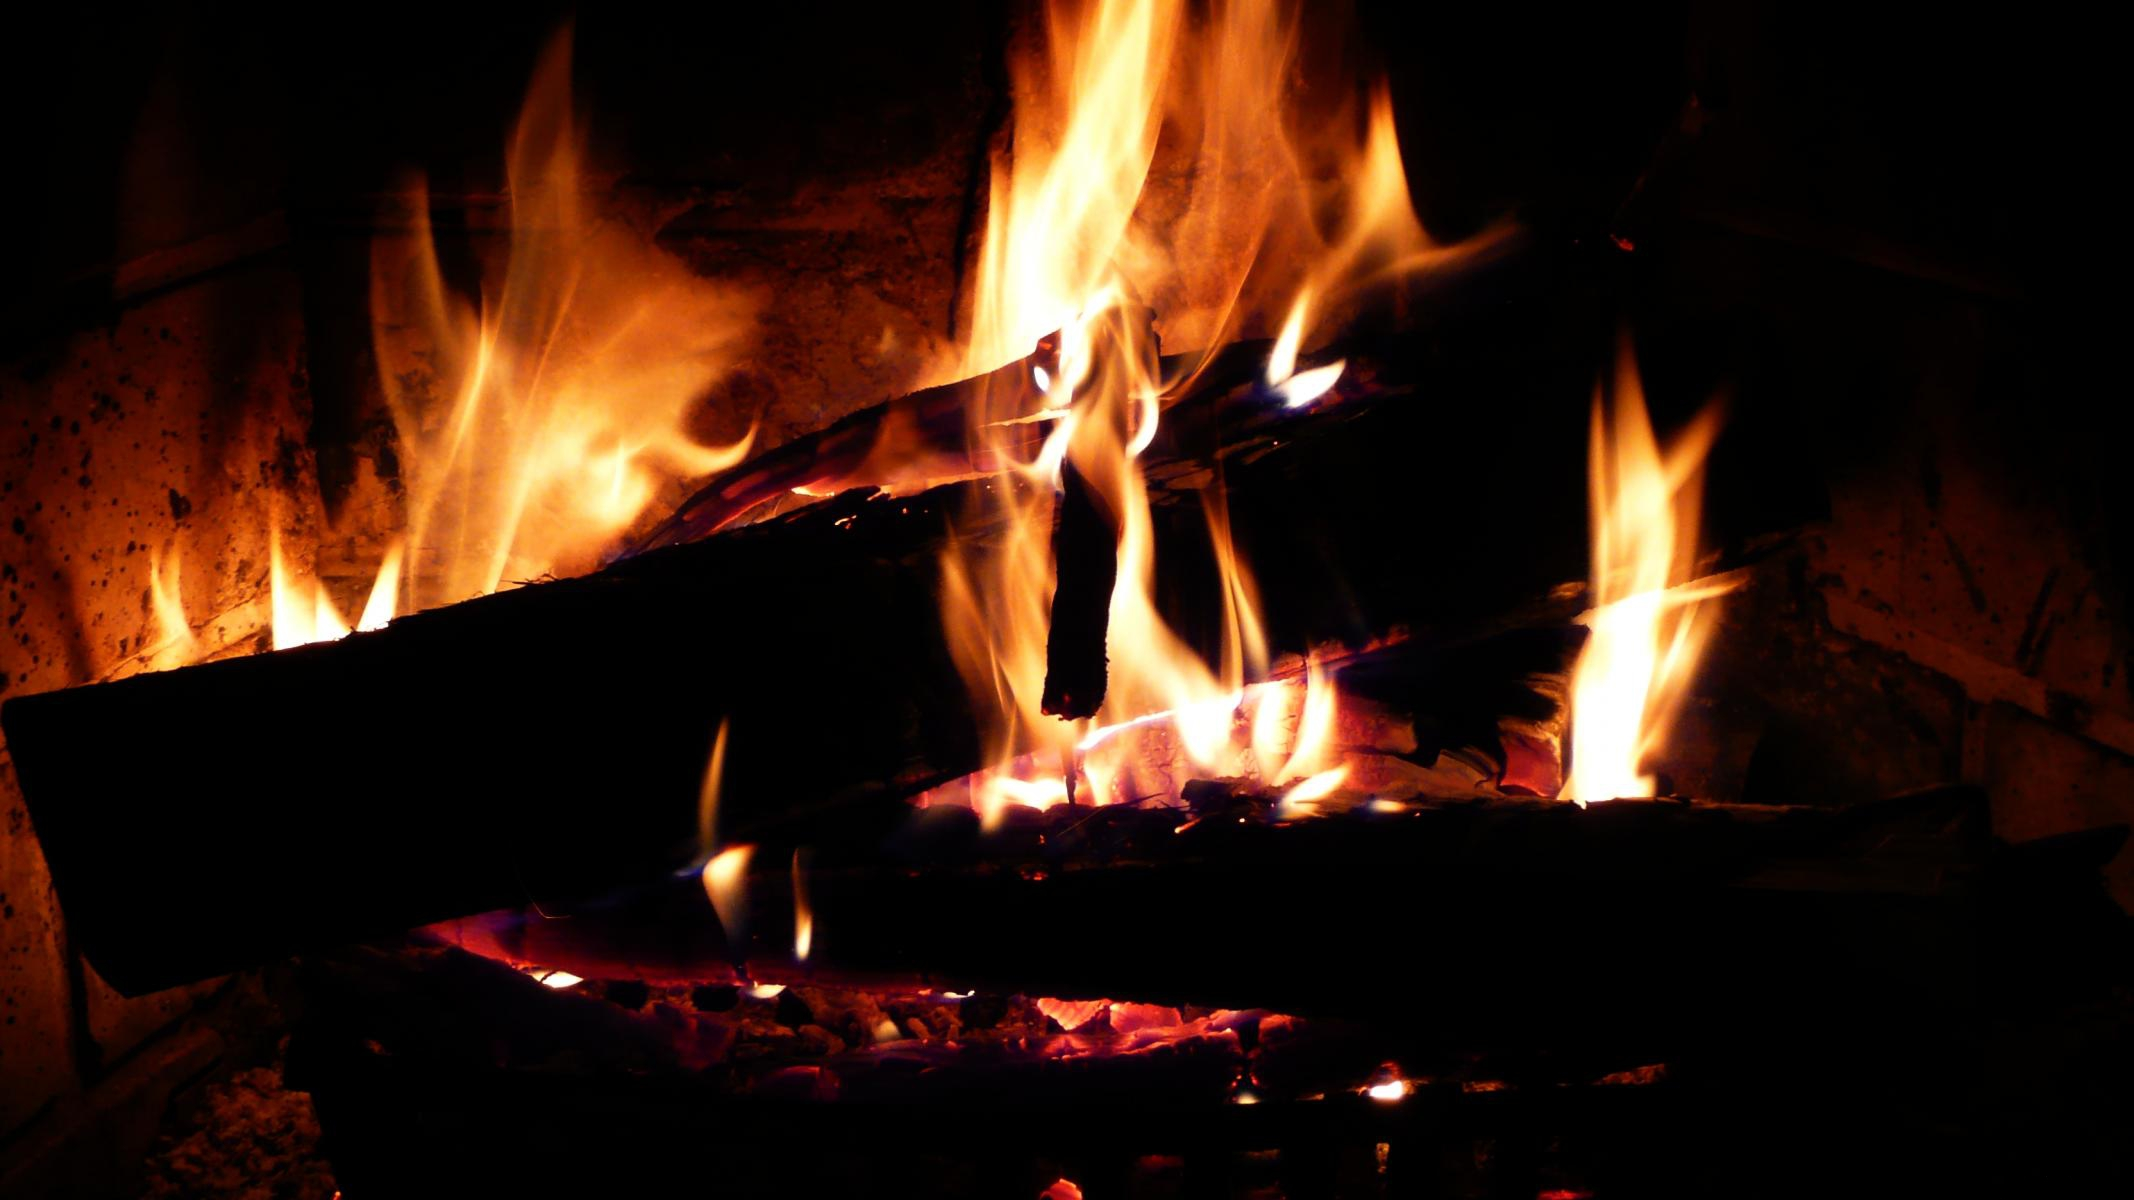 wallpaper.wiki-Fireplace-Wallpaper-PIC-WPE008674